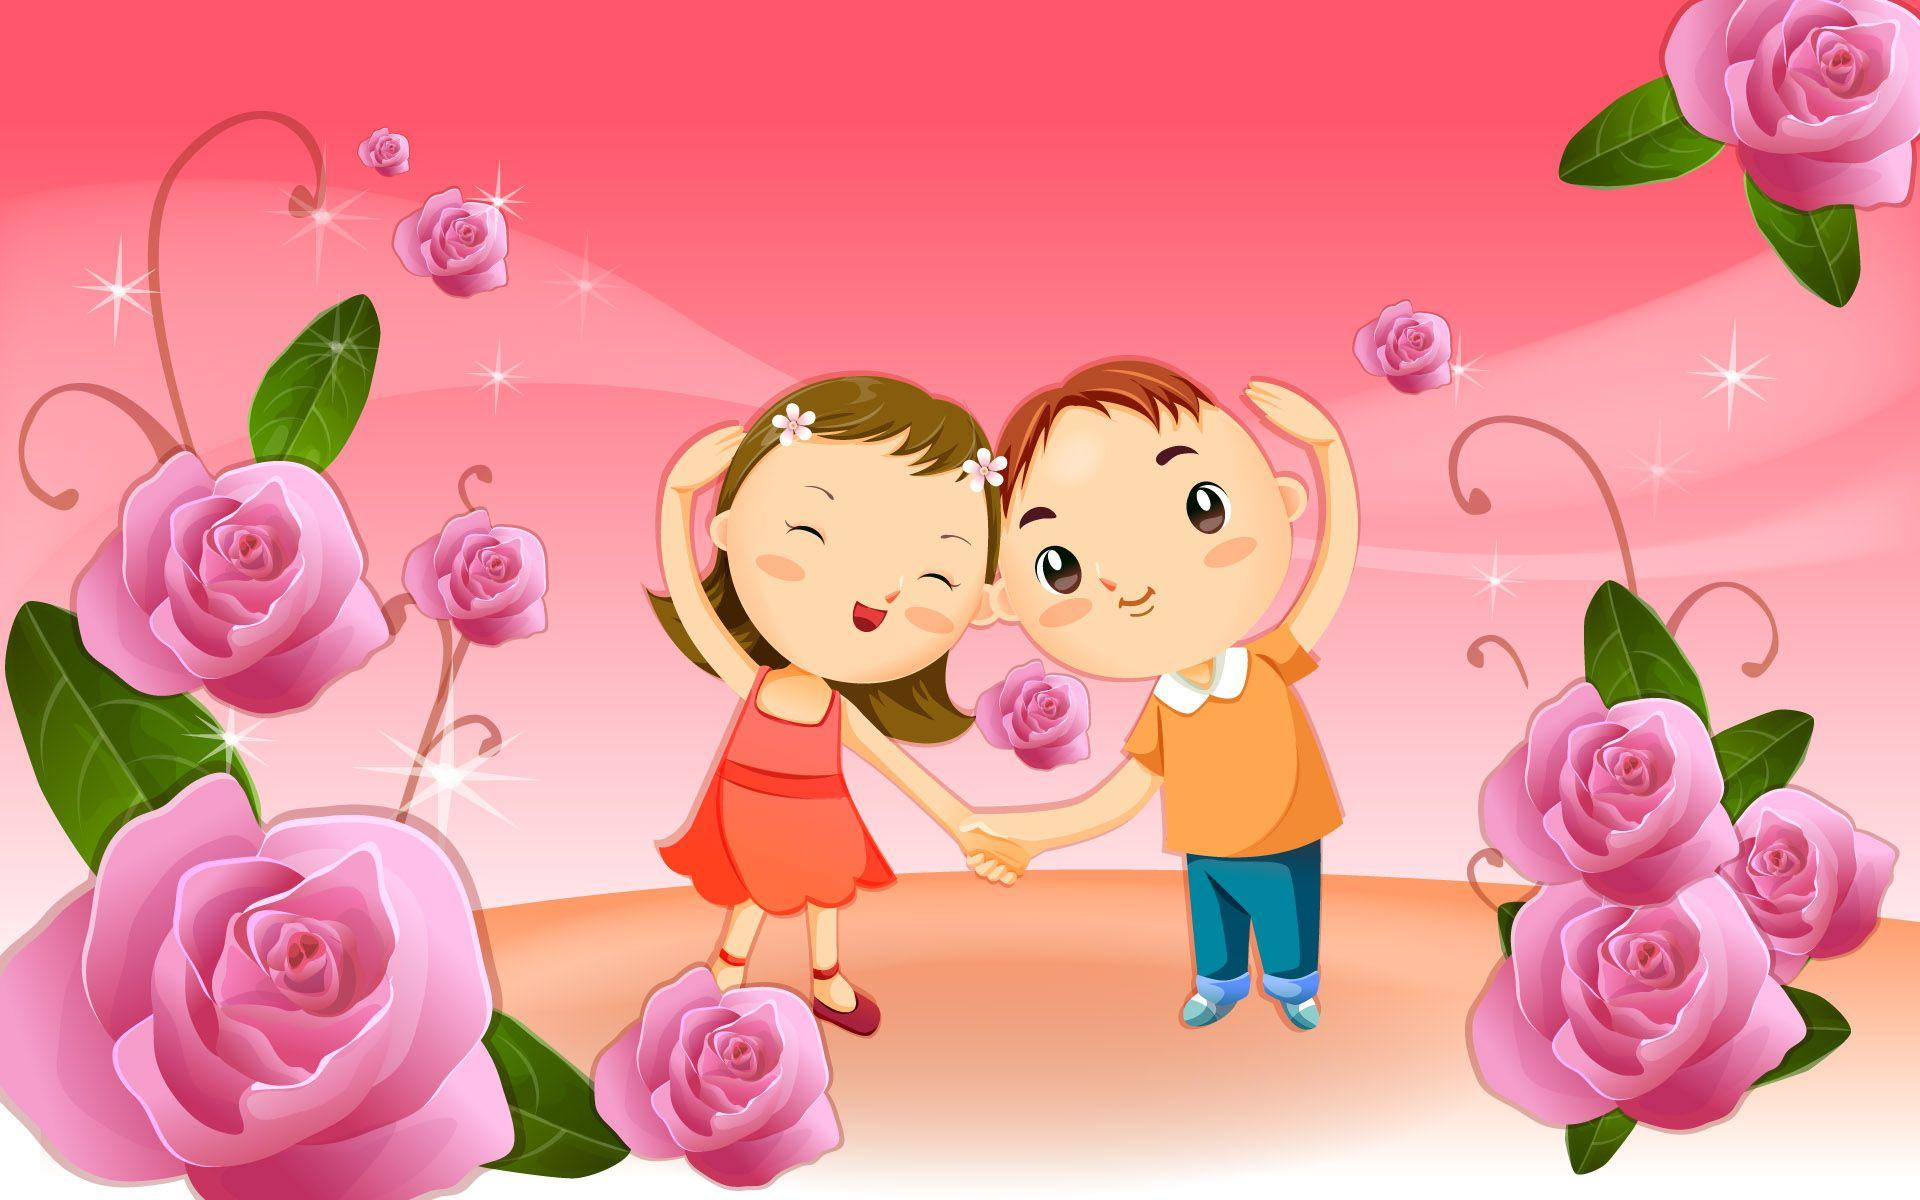 cartoon Type Love Wallpaper : Love cartoon Wallpapers - Wallpaper cave